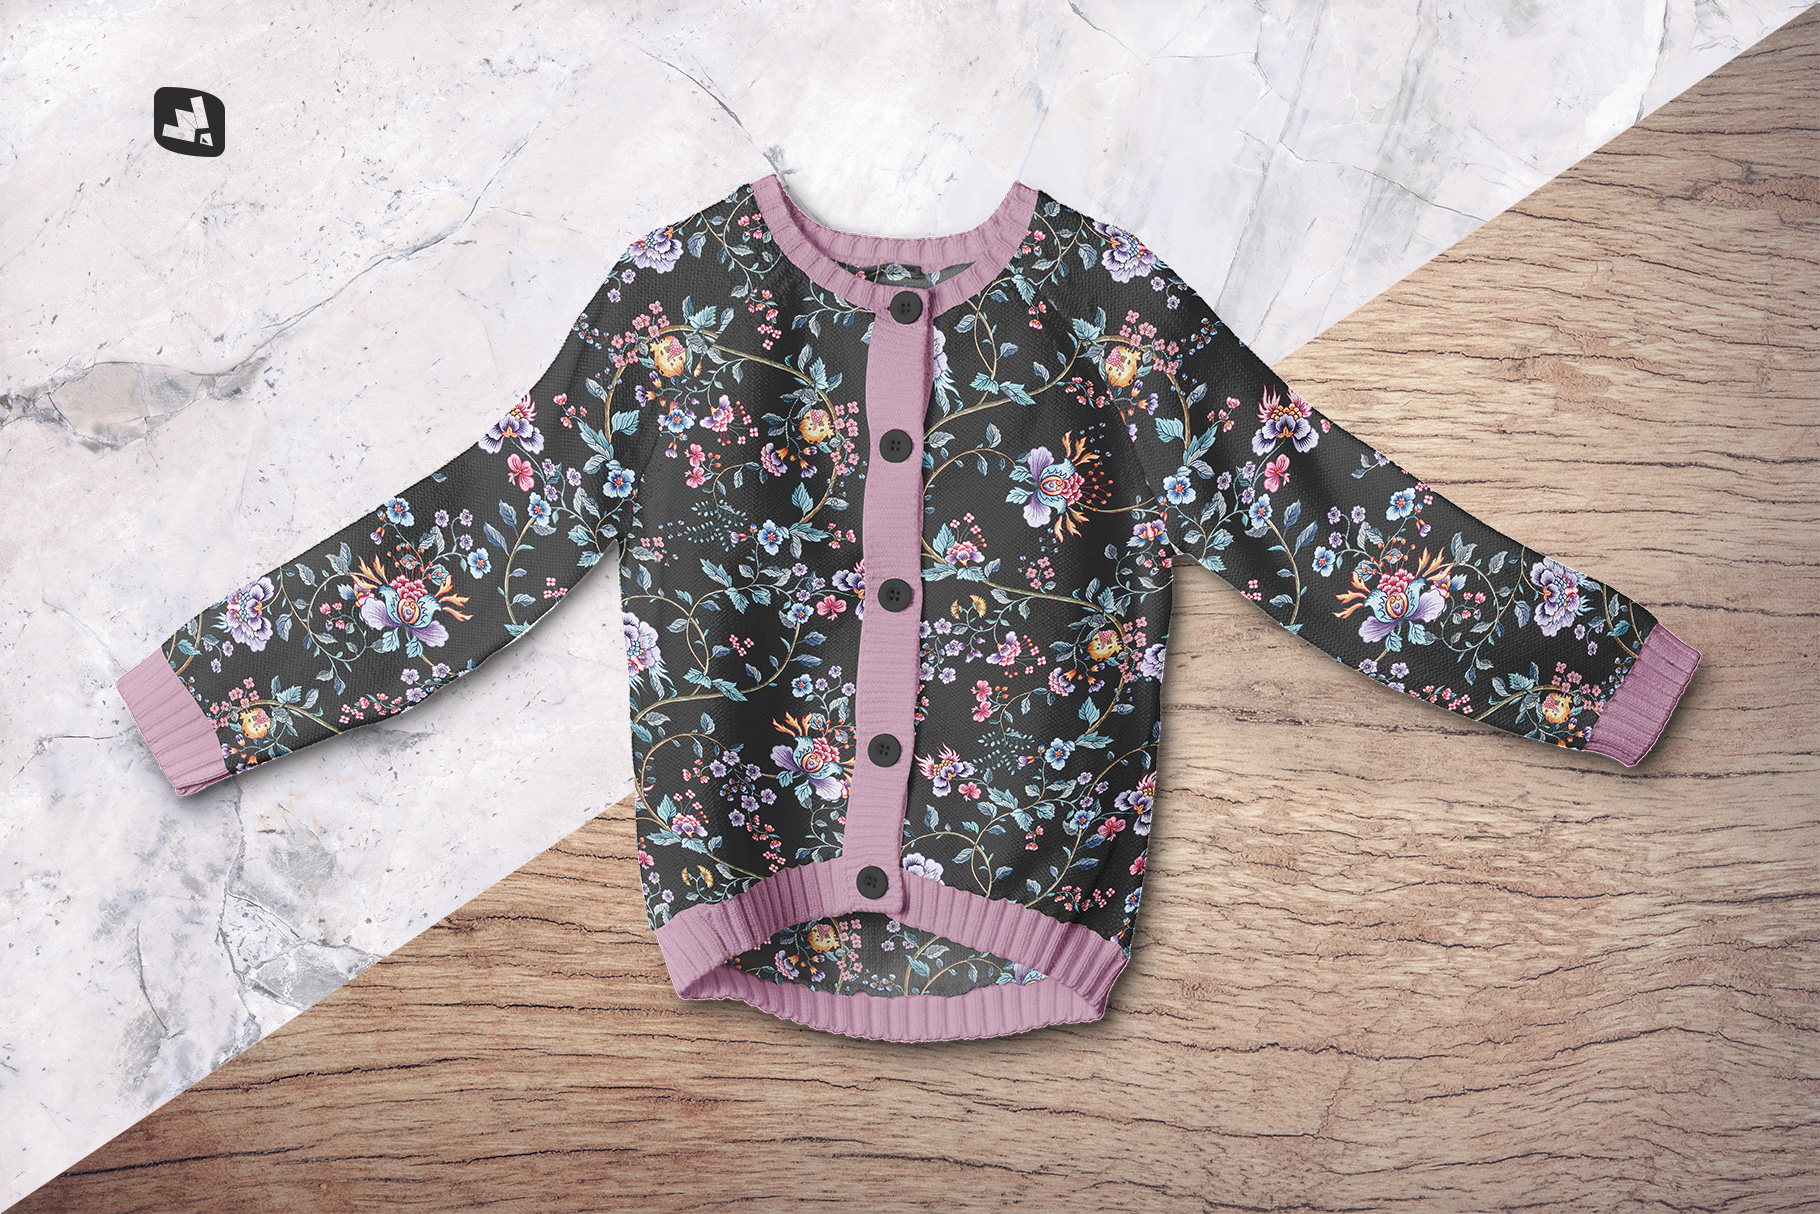 background options of the top view baby sweater mockup